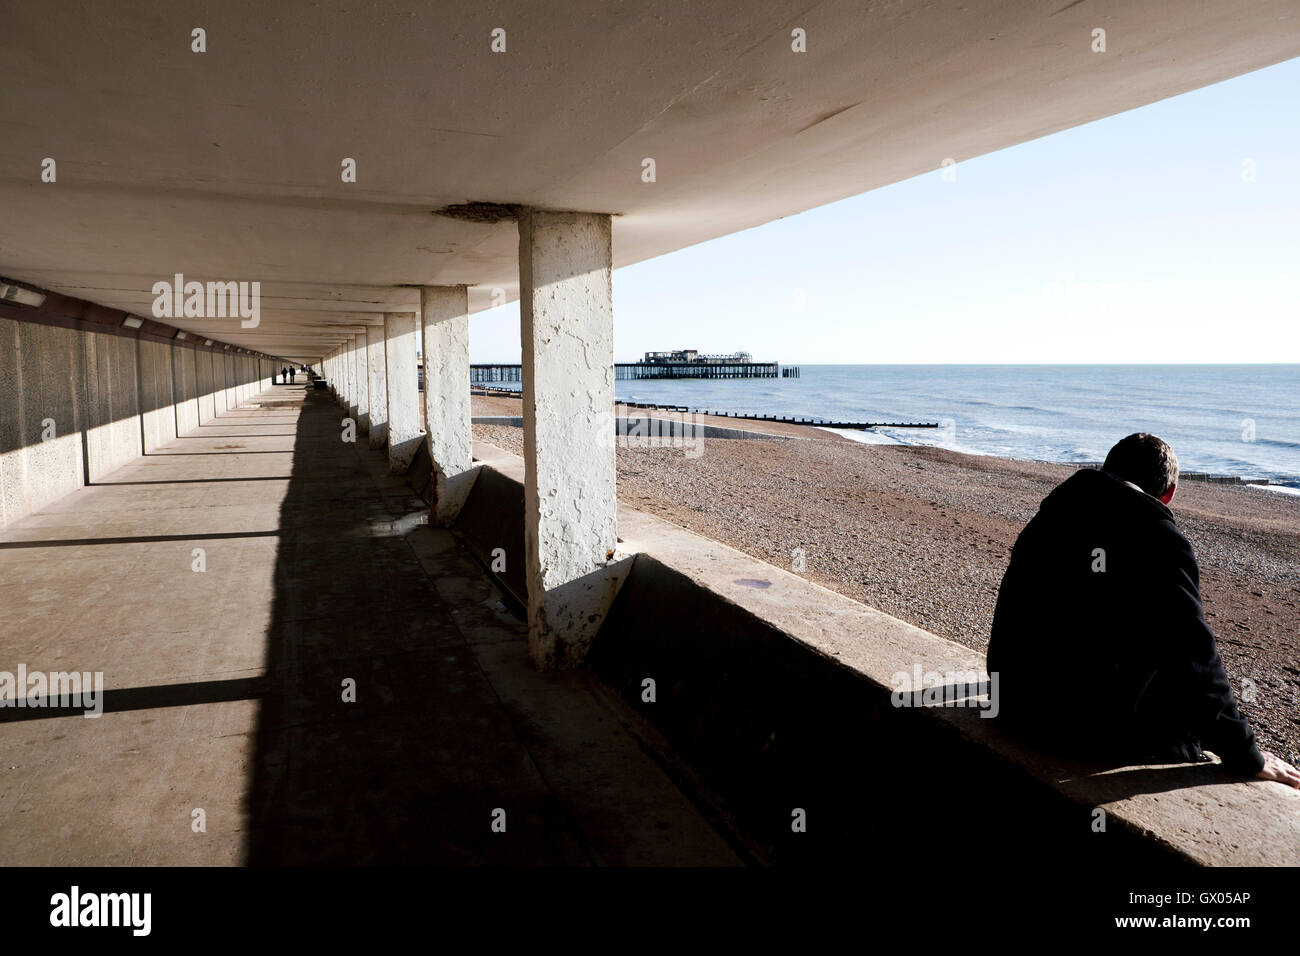 Hastings Pier. A lower deck of coast promenade. Color photograph. - Stock Image